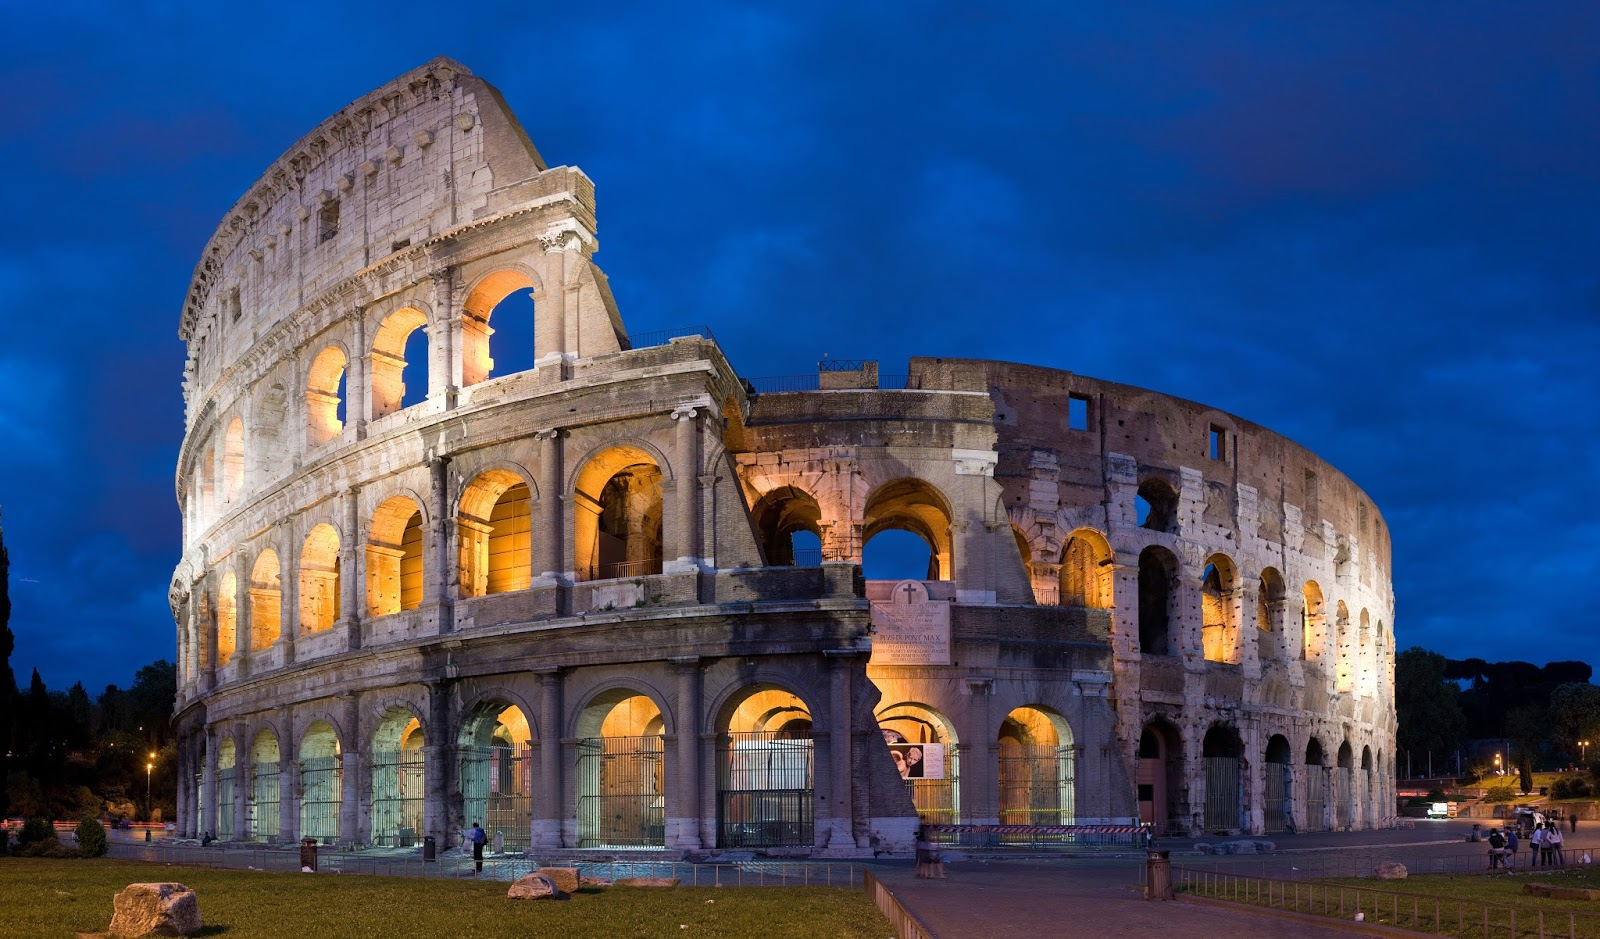 The Colosseum in Rome, source www.telegraph.co.uk